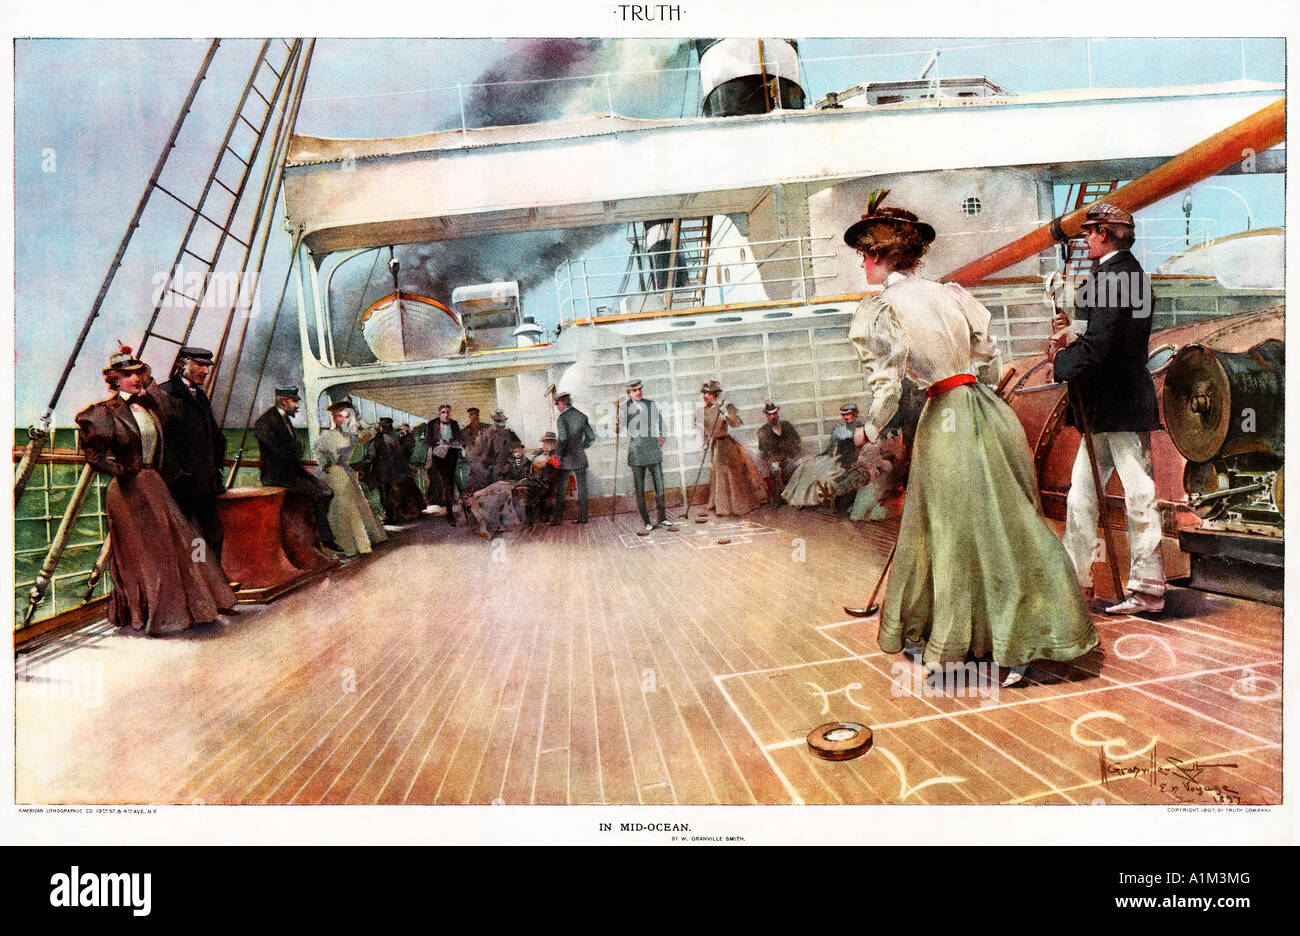 In Mid Ocean passengers on a Trans Atlantic voyage pass the time with deck quoits in this 1897 magazine illustration - Stock Image